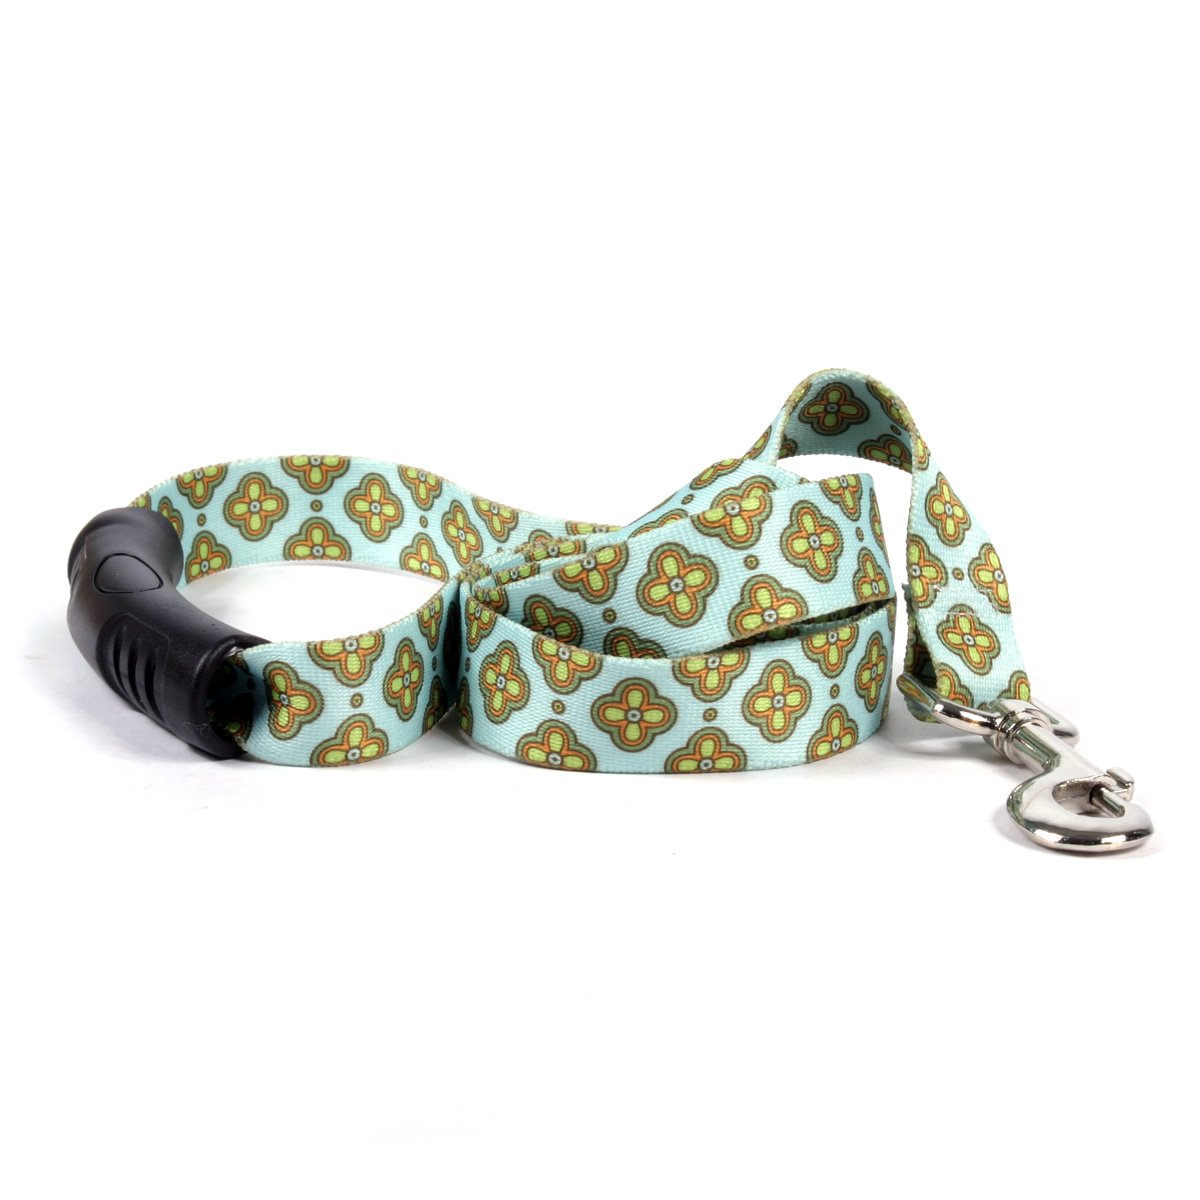 Yellow Dog Design Cleo Blue Ez-Grip Dog Leash with Comfort Handle 1'' Wide and 5' (60'') Long, Large